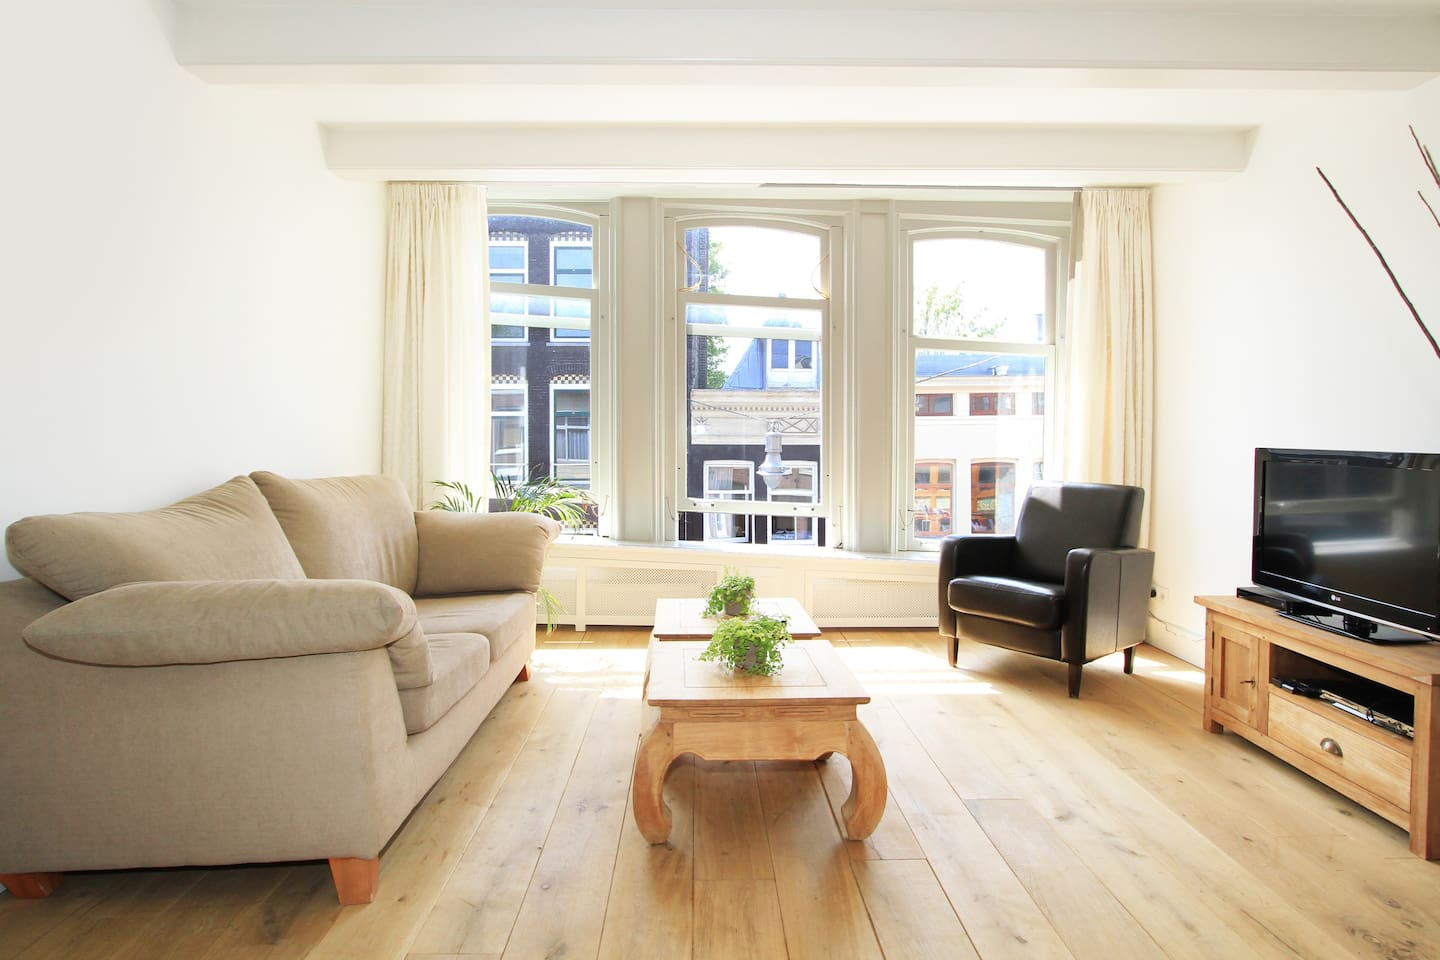 nice bright living room with high windows overlooking the lively street!